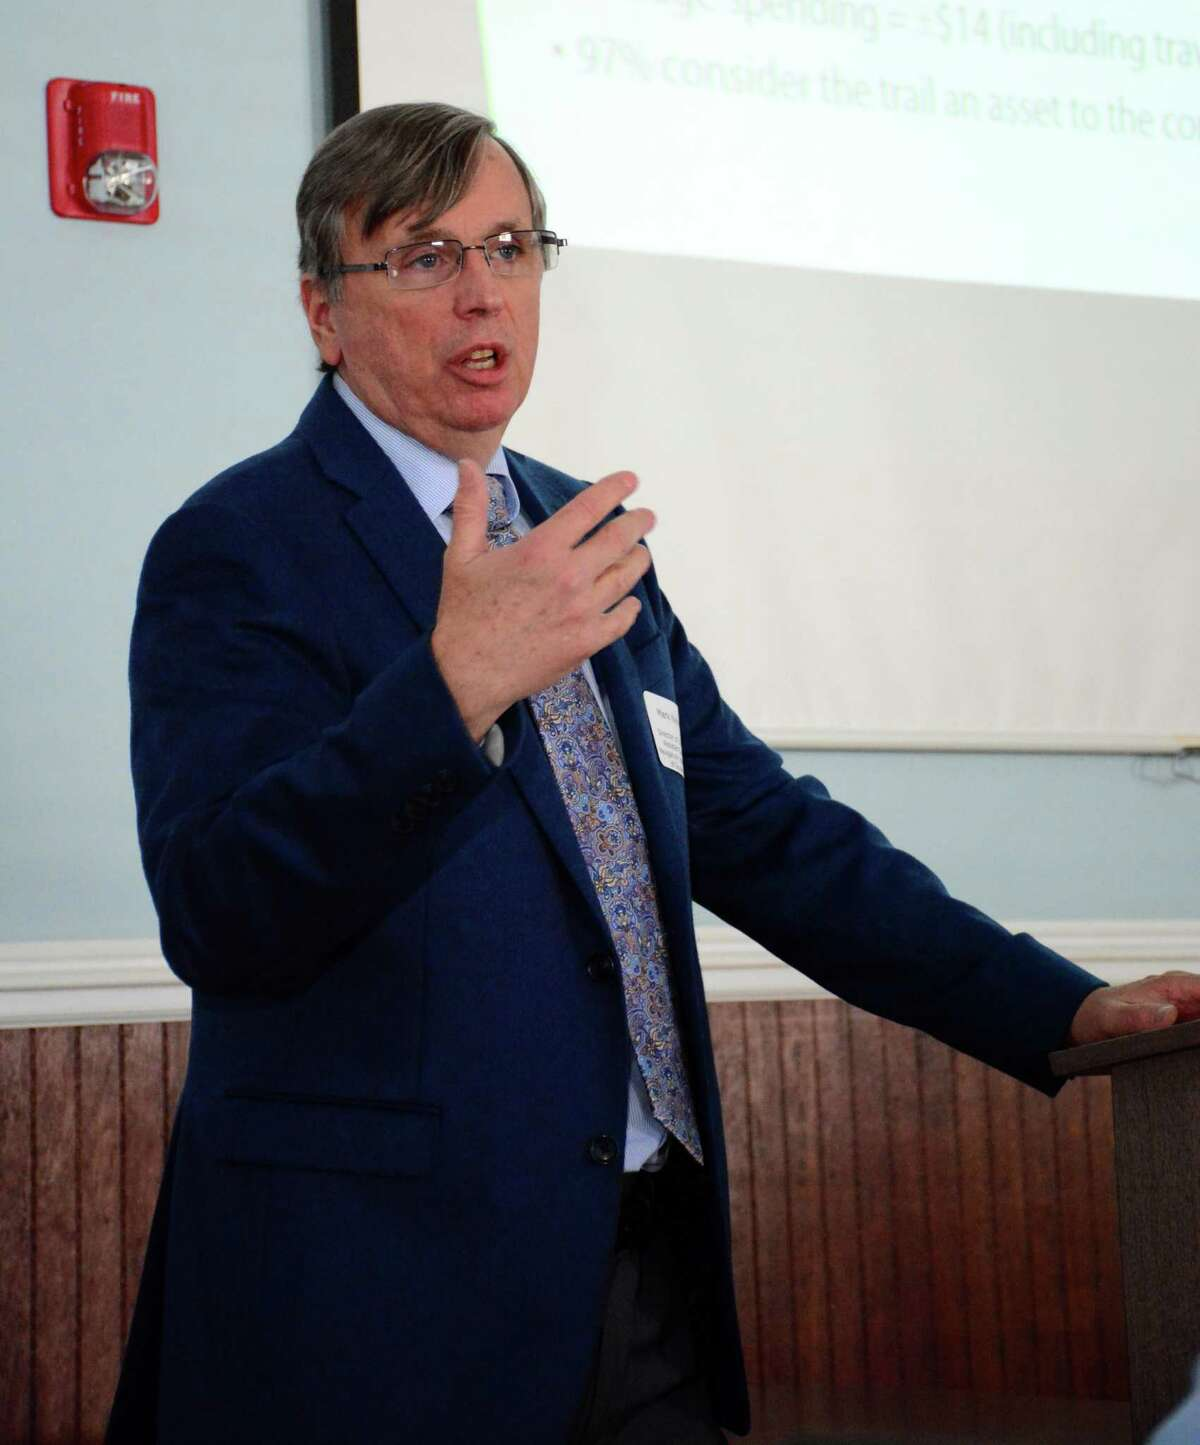 Mark Nielson, Assistant Director of Naugatuck Valley Council of Government, speaks during a discussion that was held at the New Milford Town Hall on Monday, March 20, 2017 about future trail growth in Western Connecticut.